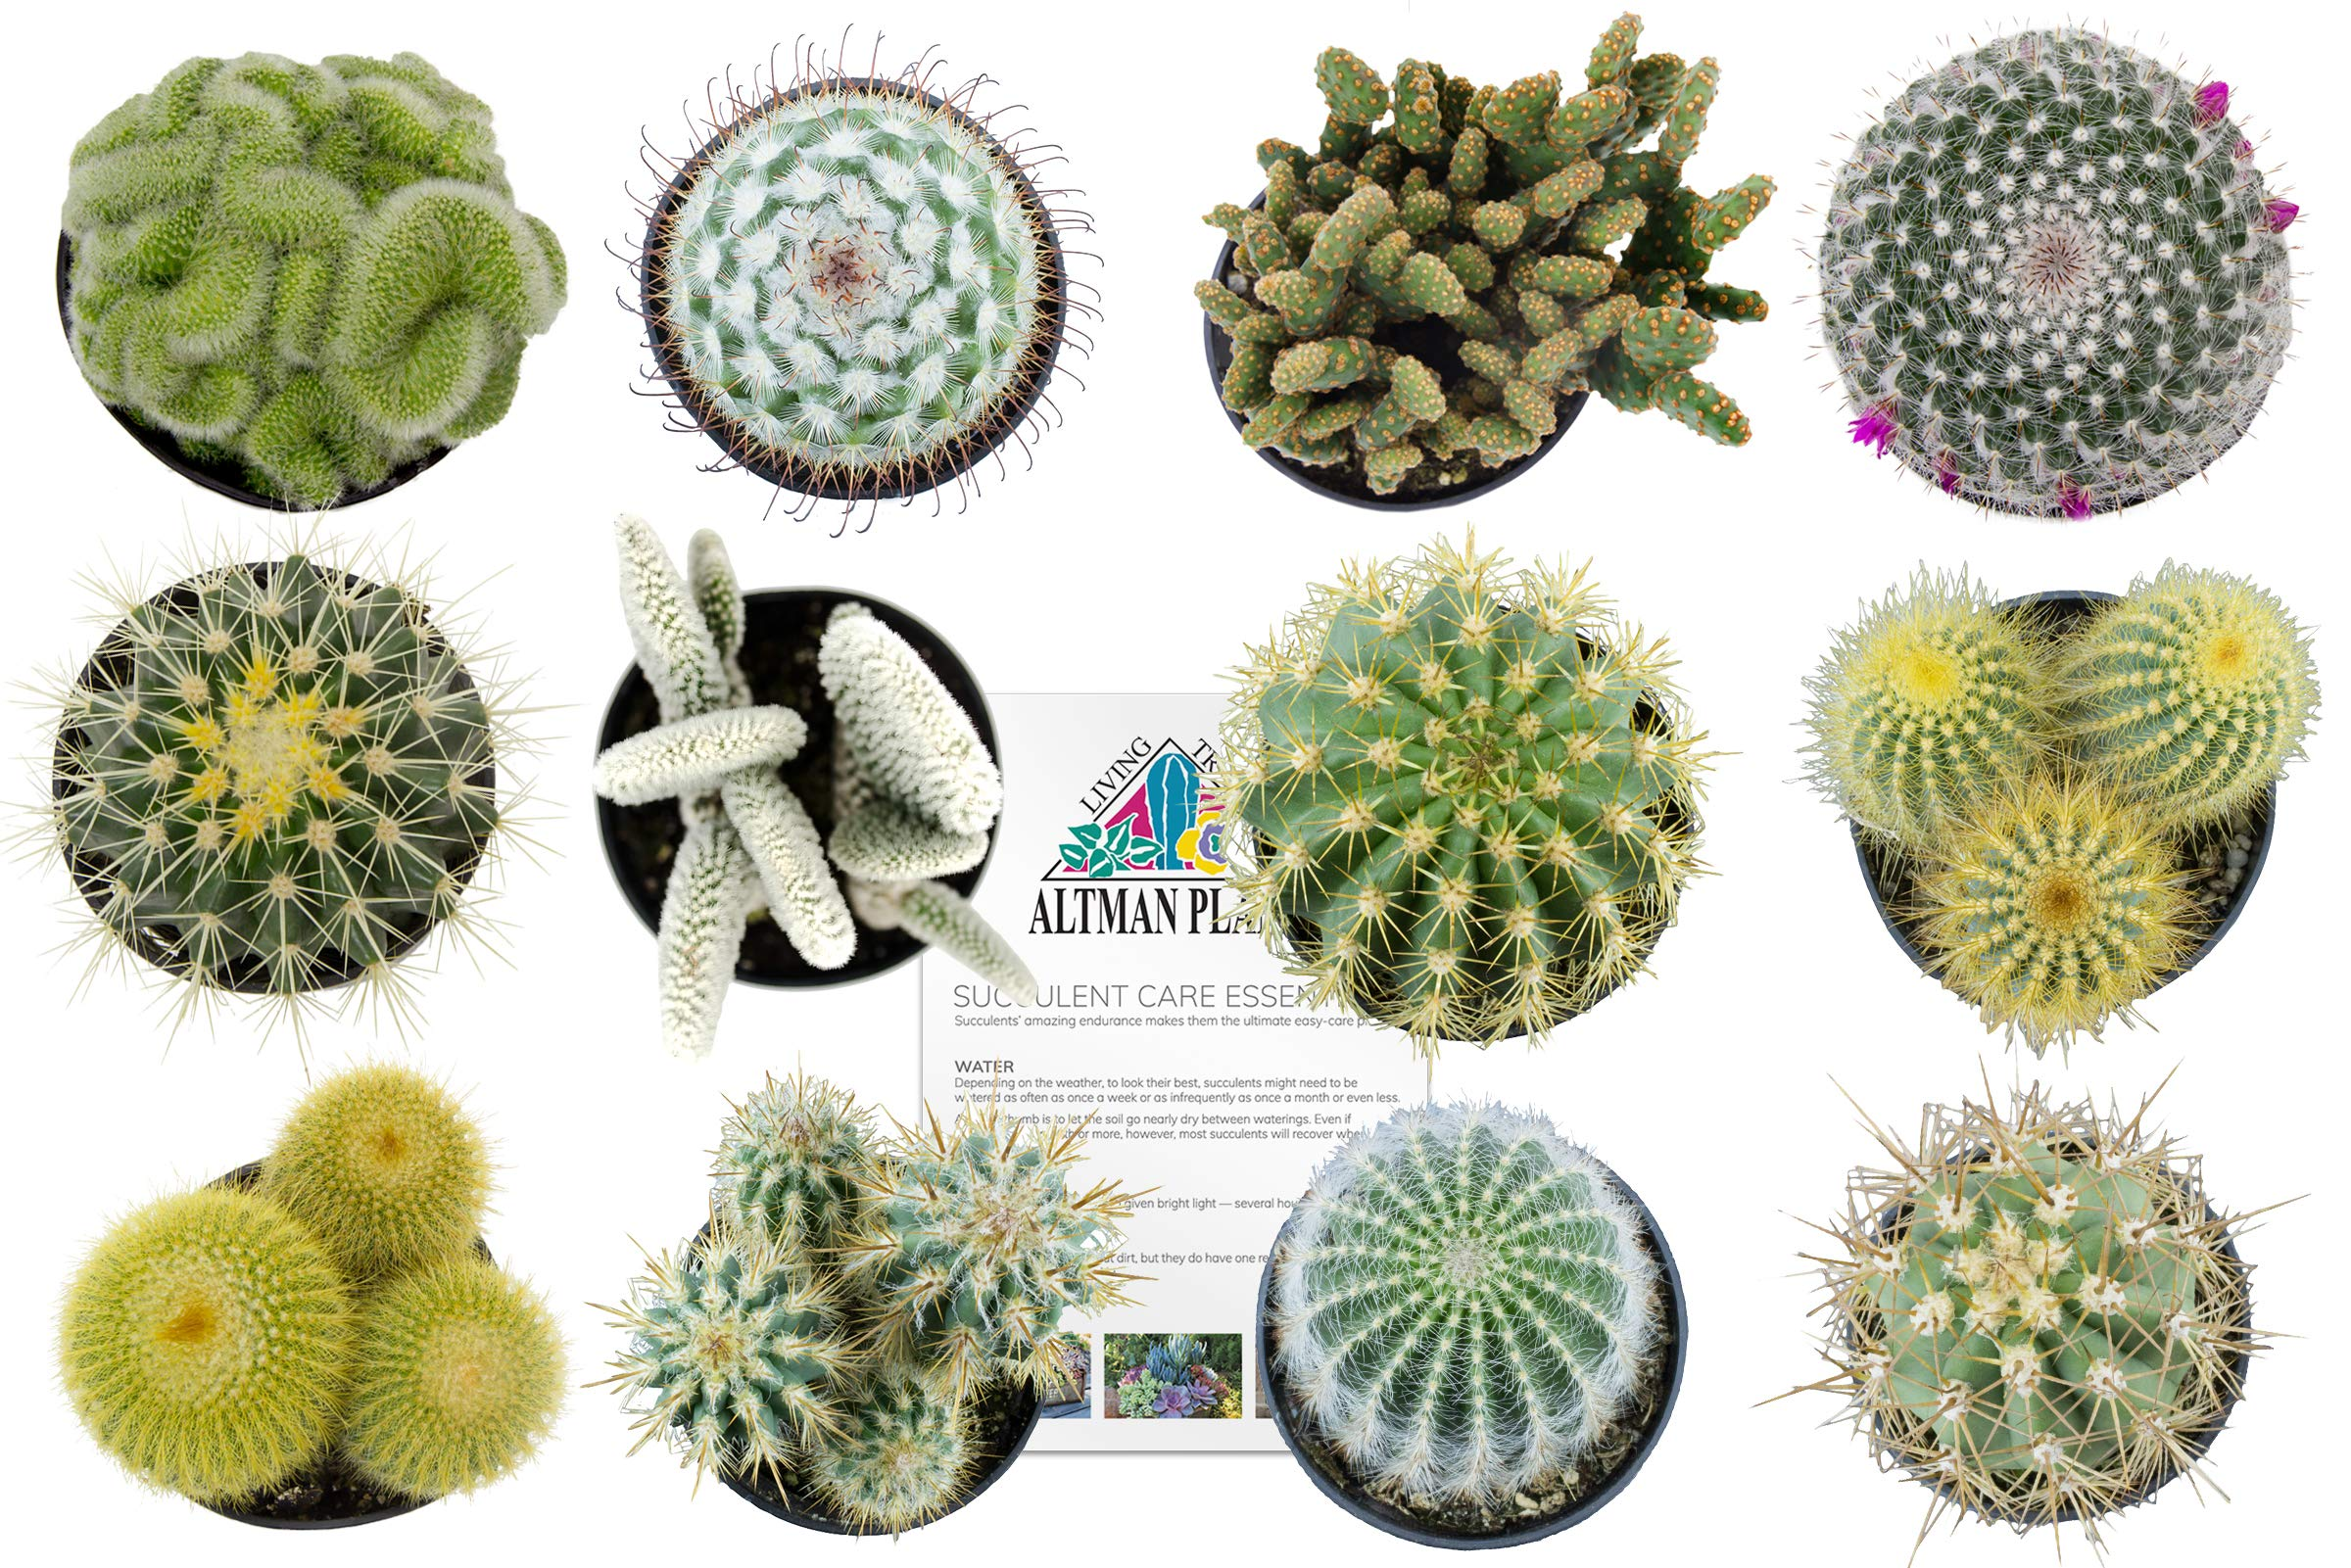 Altman Plants Assorted Live Cactus Collection mini for planters or gifts, 2.5'', 12 Pack by Altman Plants (Image #1)